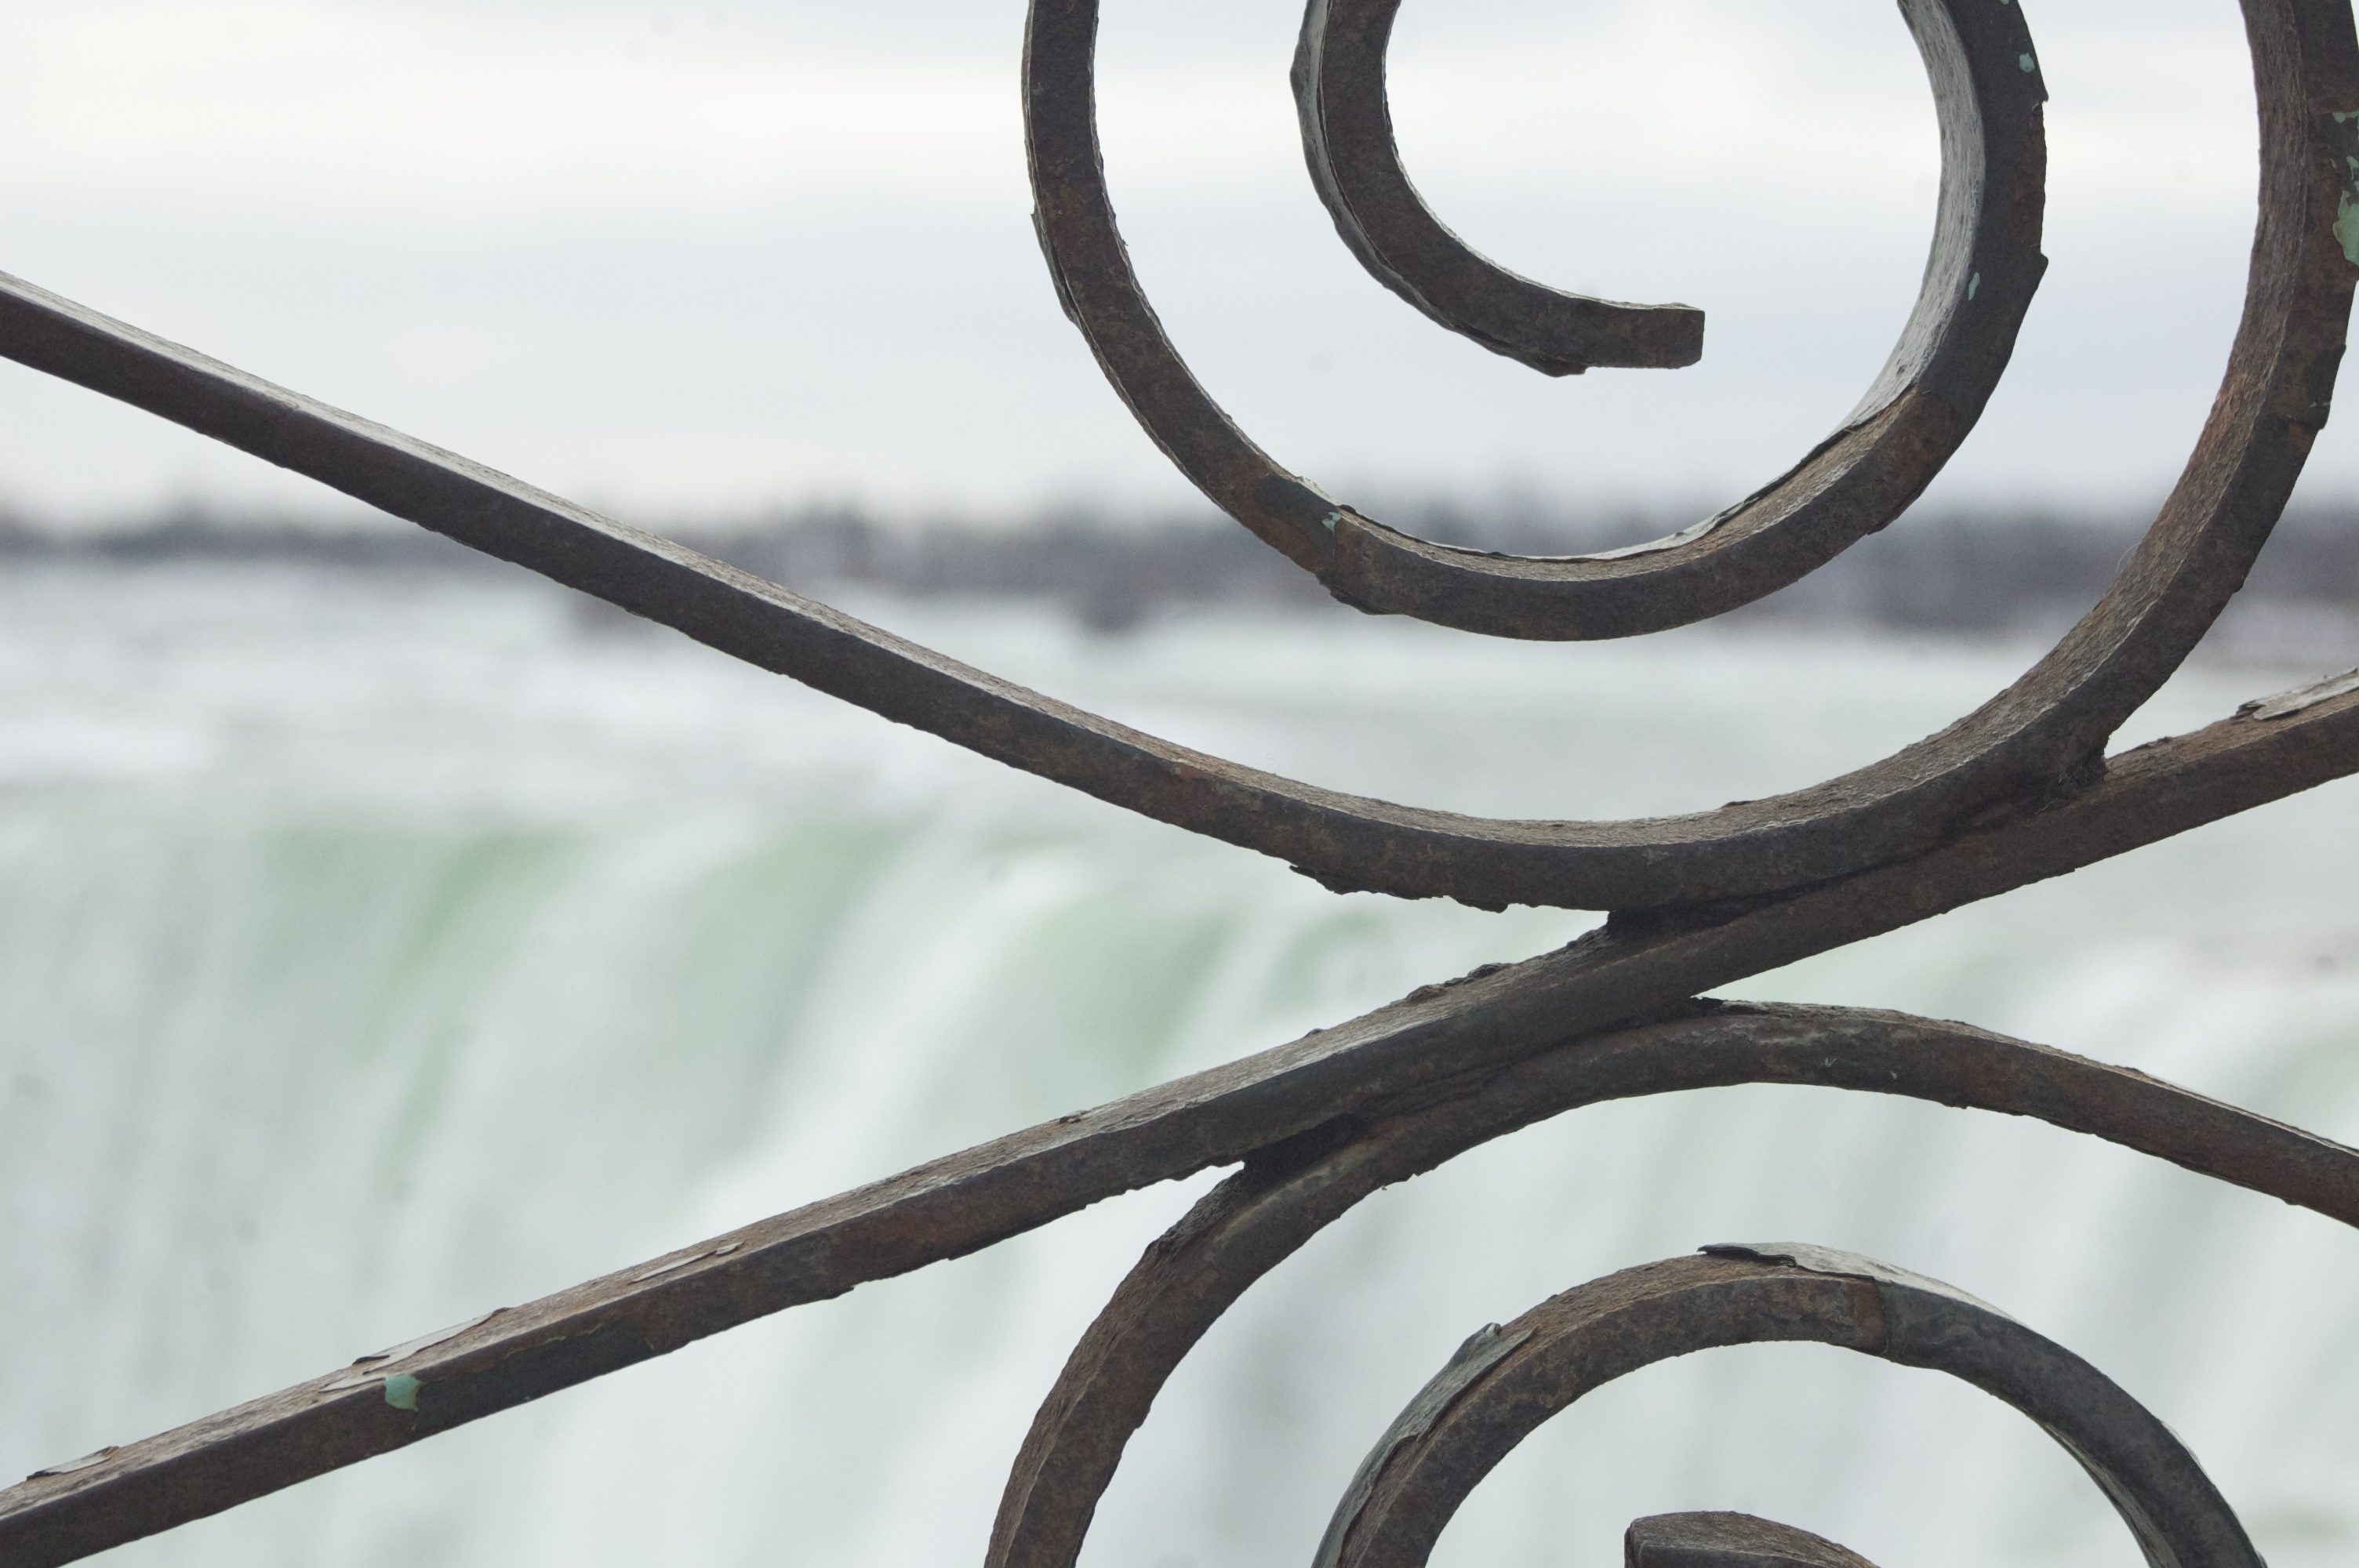 Horseshoe Falls in February 2013. Daniel Macfarlane